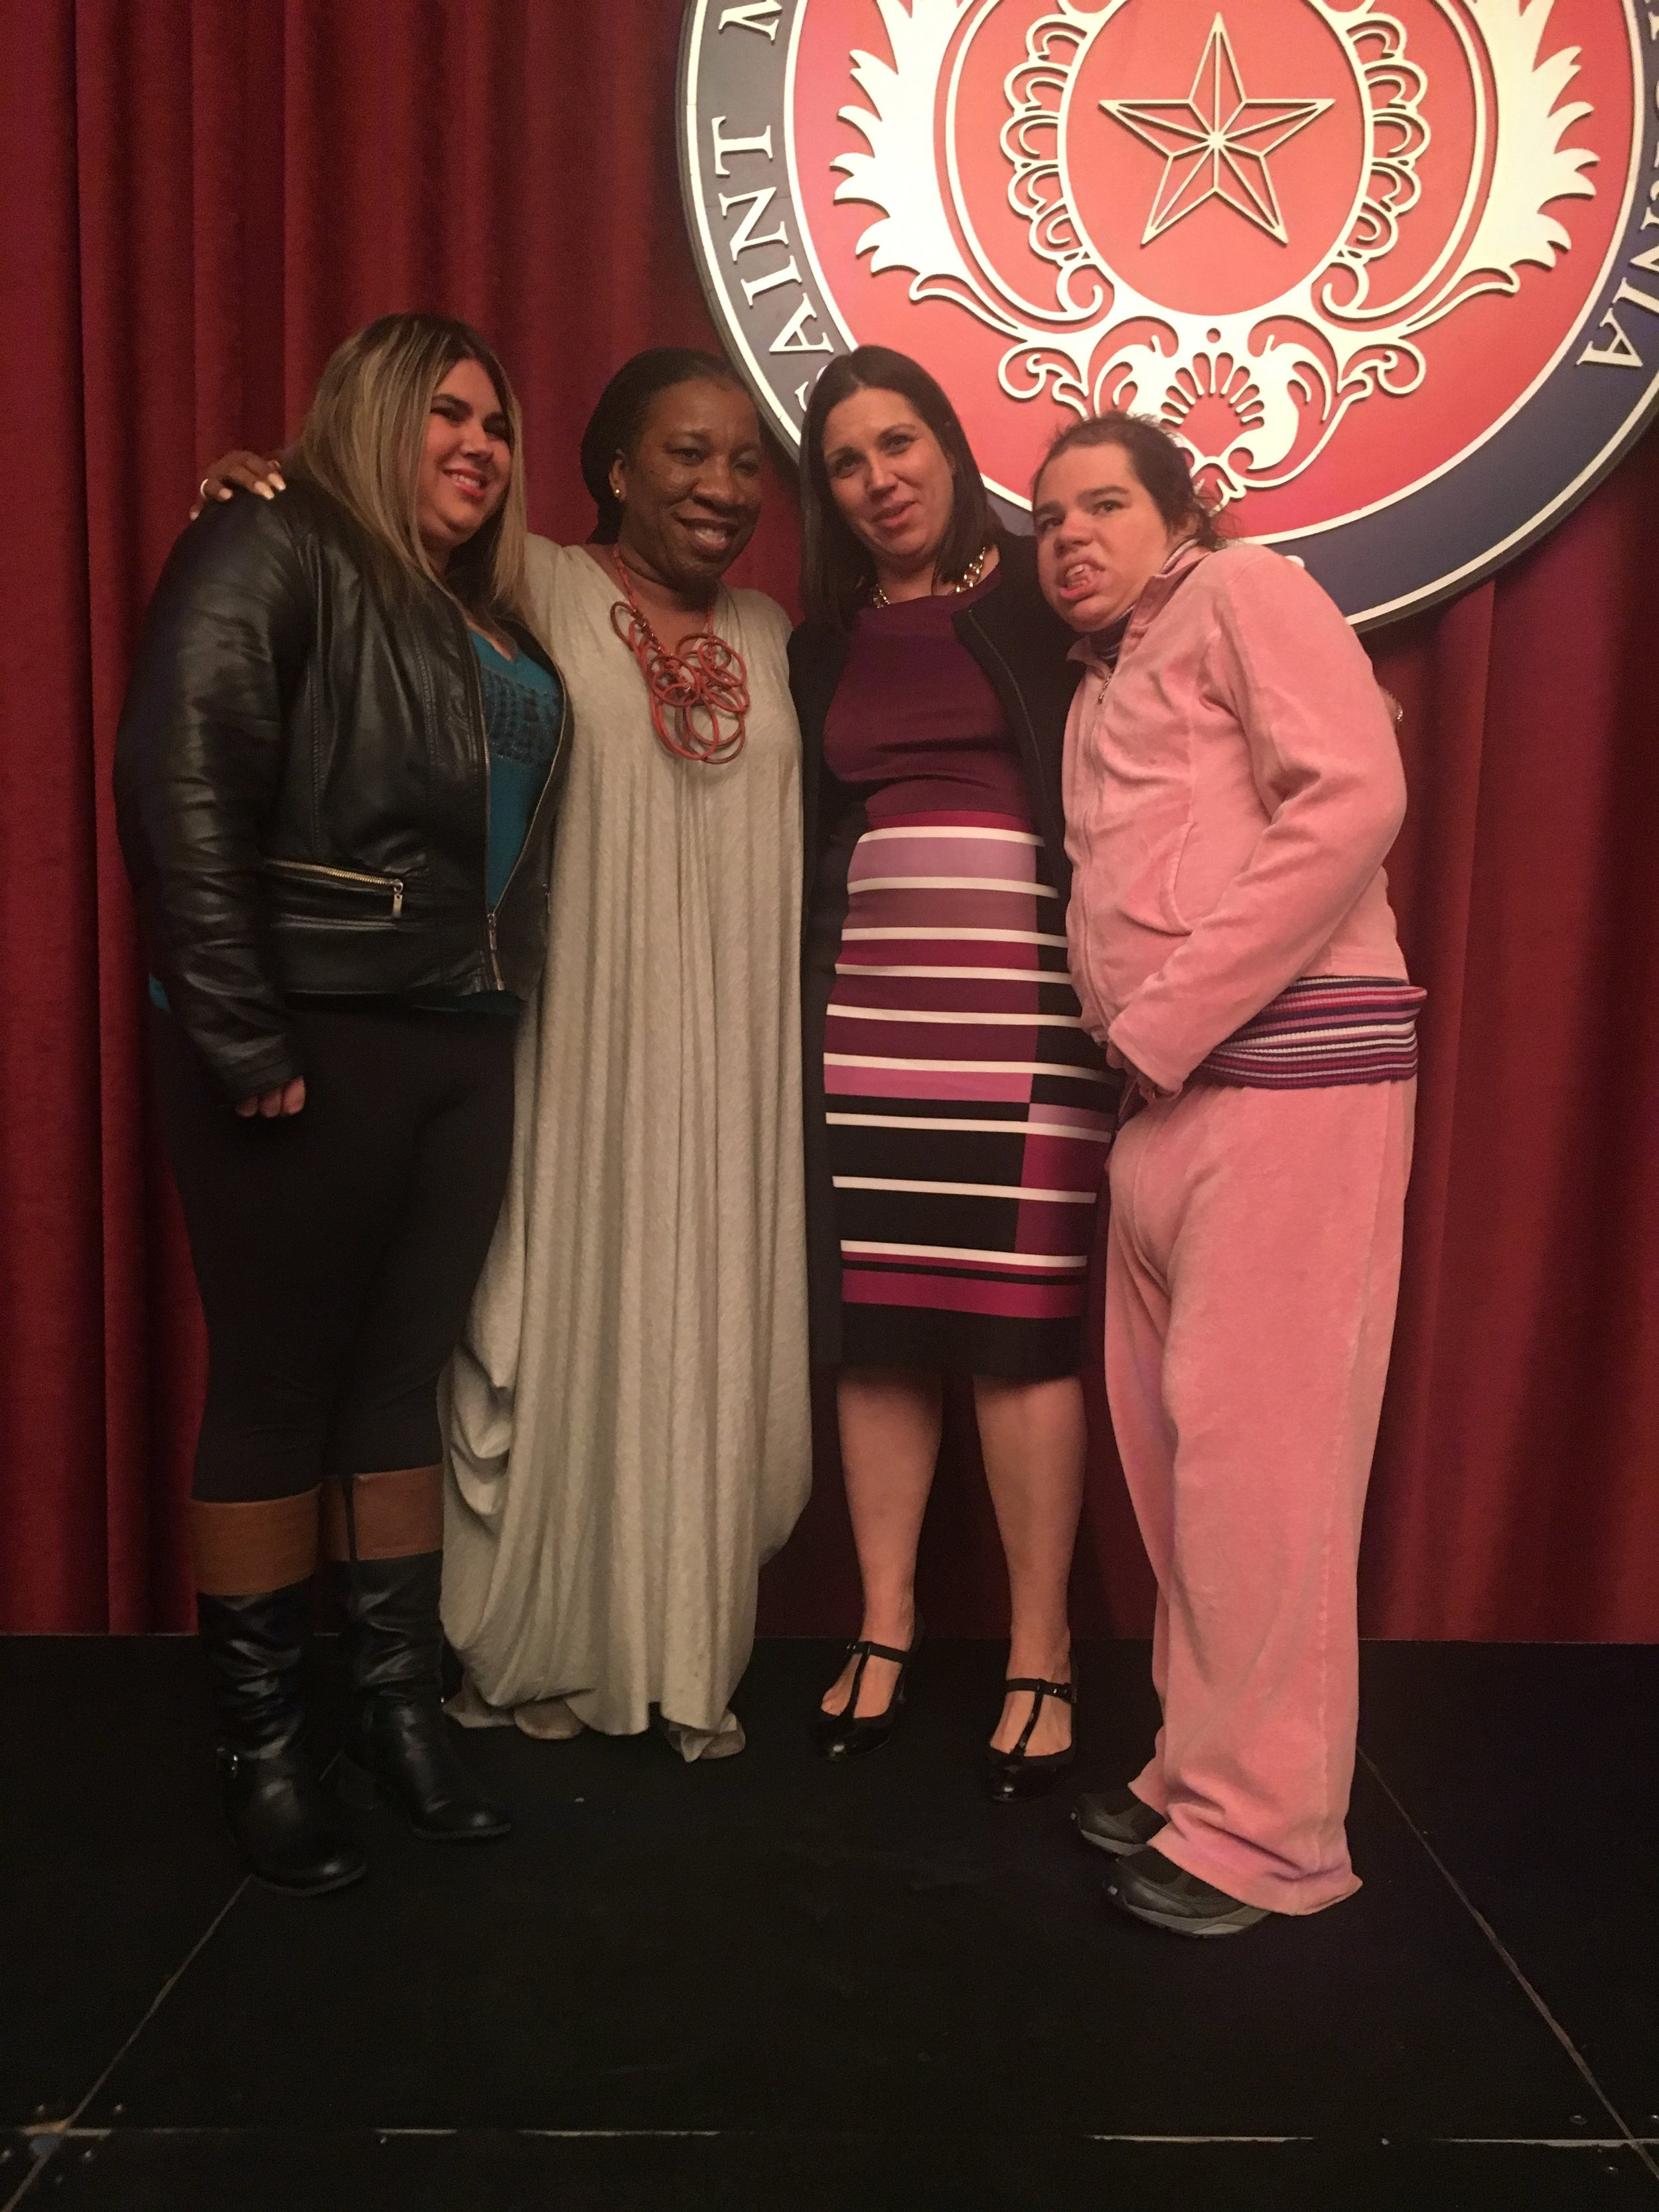 Neward with Tarana Burke, founder of the #MeToo movement, and her sisters Patricia (left) and Natalie (right).